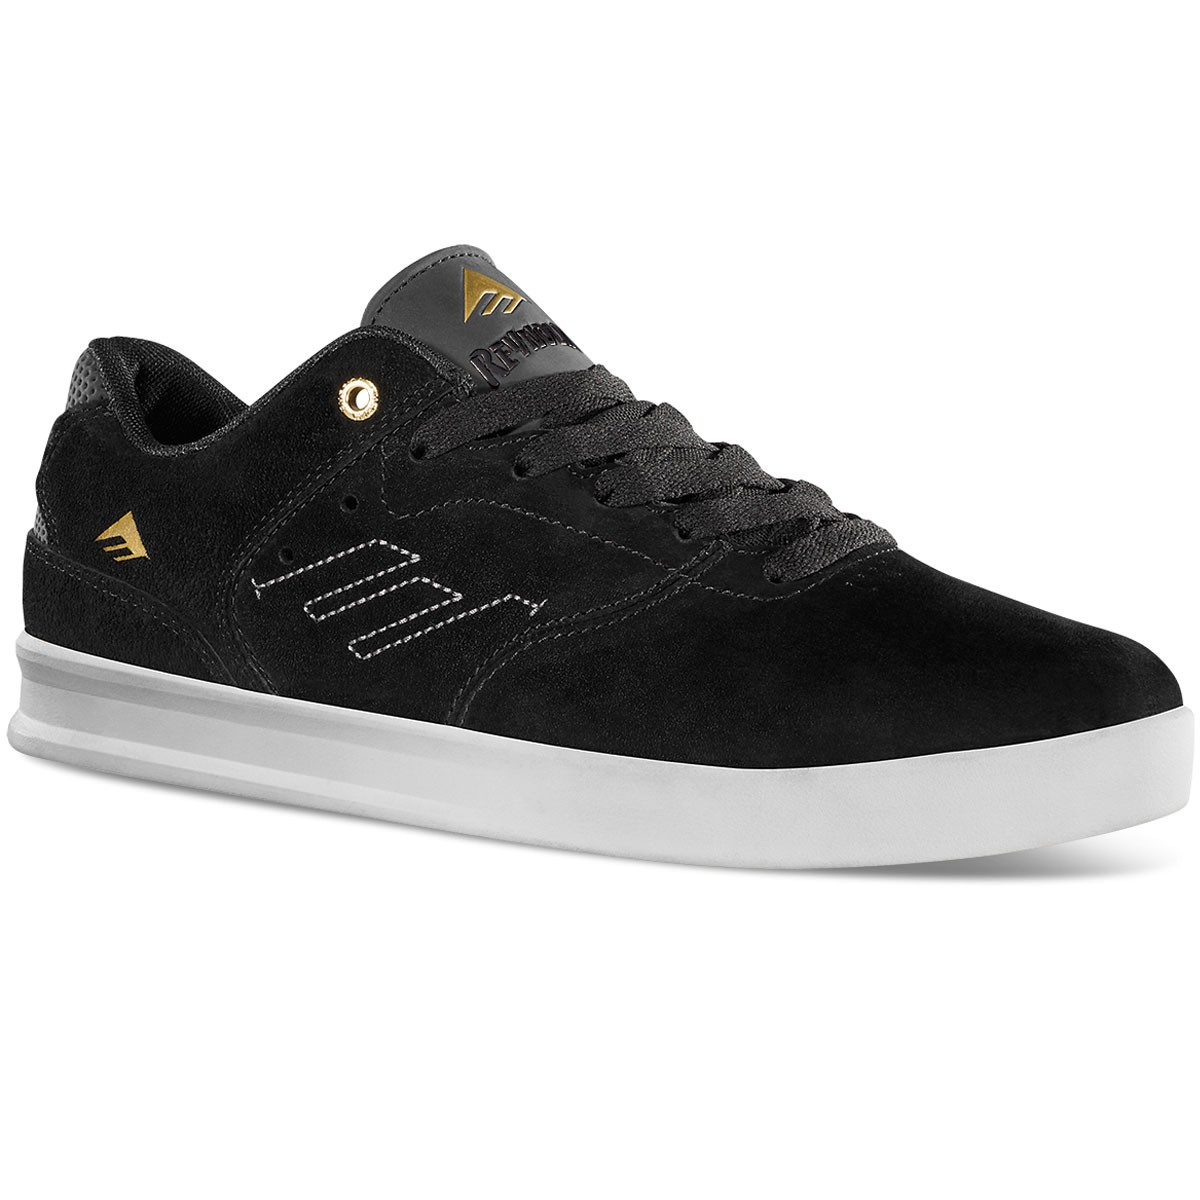 Emerica The Reynolds Low Shoes - Black / White / Gold 13.0